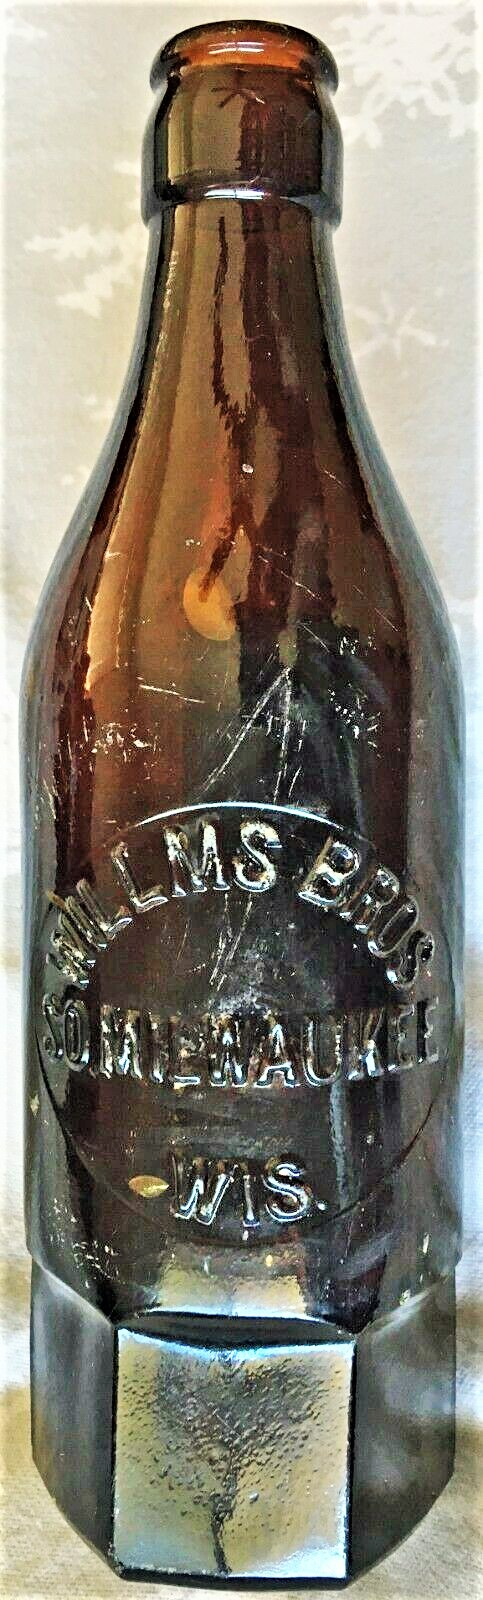 Willms Bros. Bottle Uncle Bruce Forum Sept 2020 (1).jpg